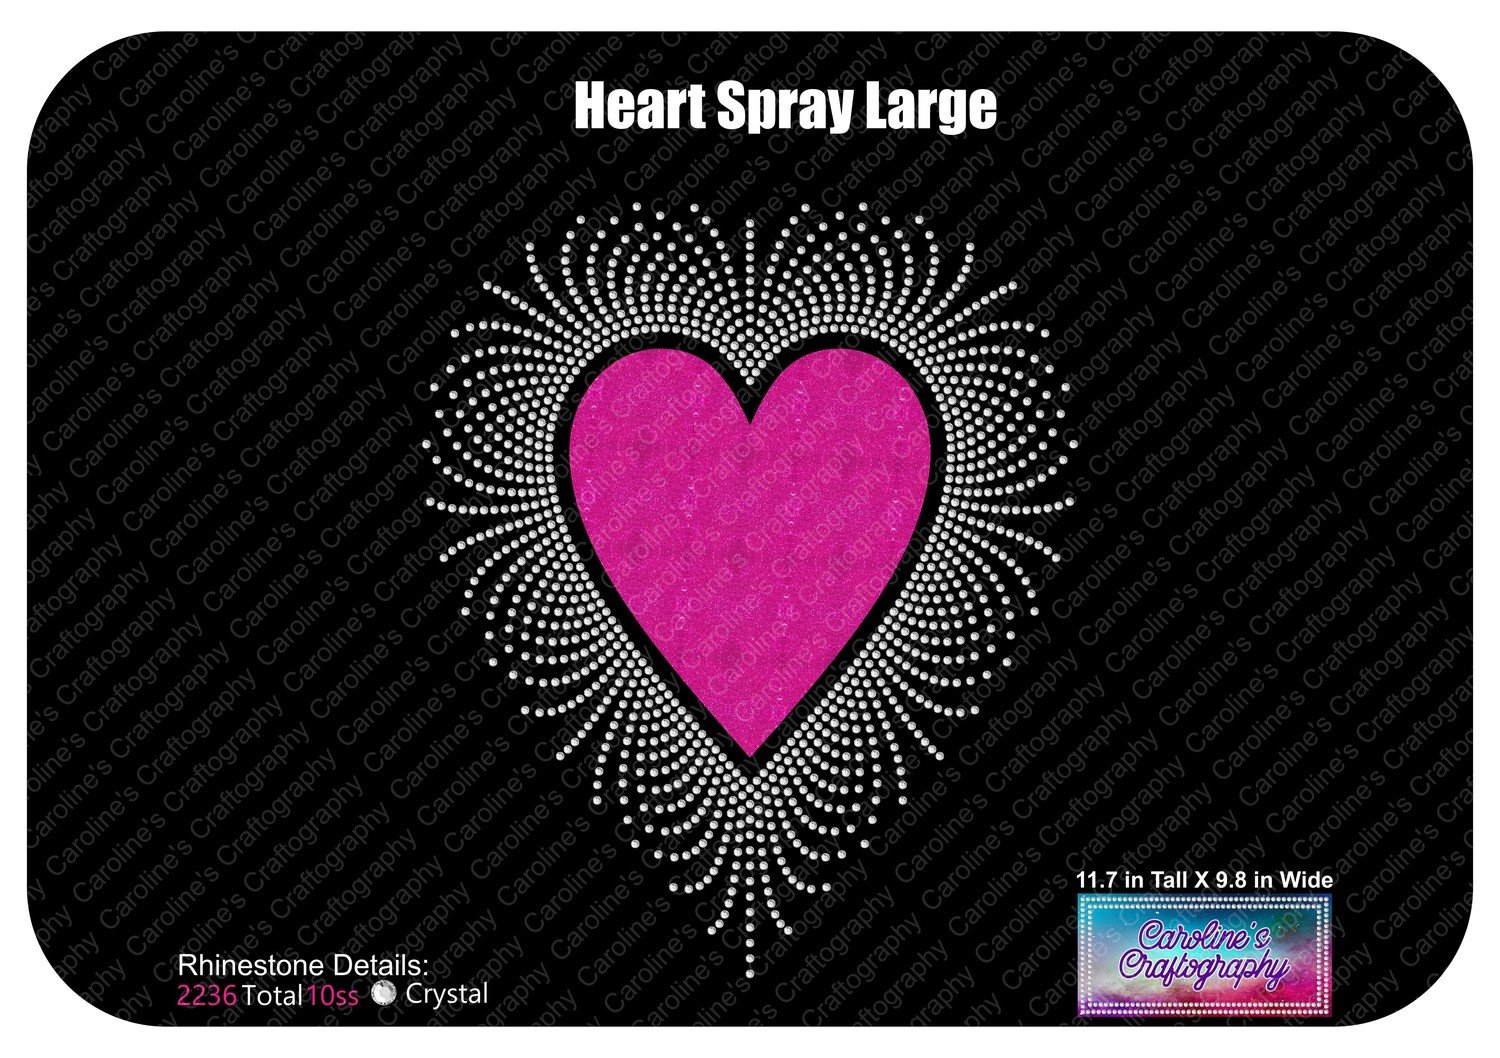 Heart Spray Large Stone Vinyl